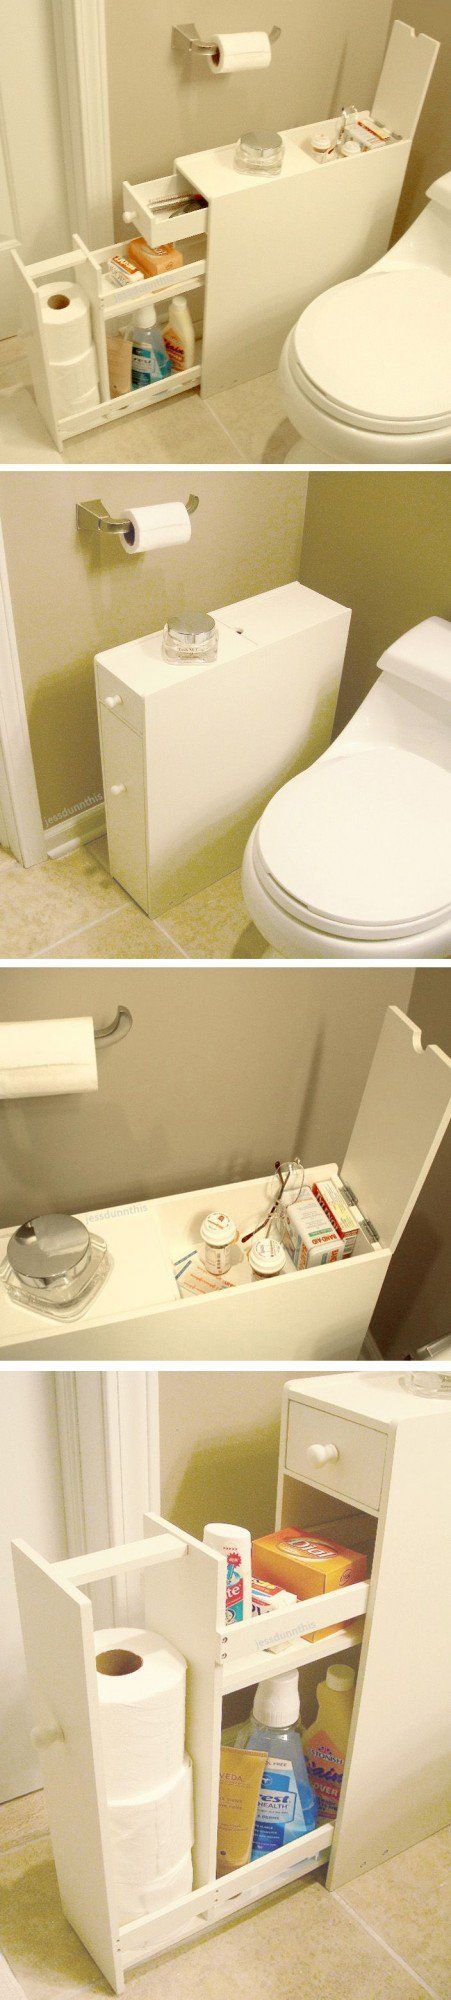 Best 25+ Small bathroom storage ideas on Pinterest